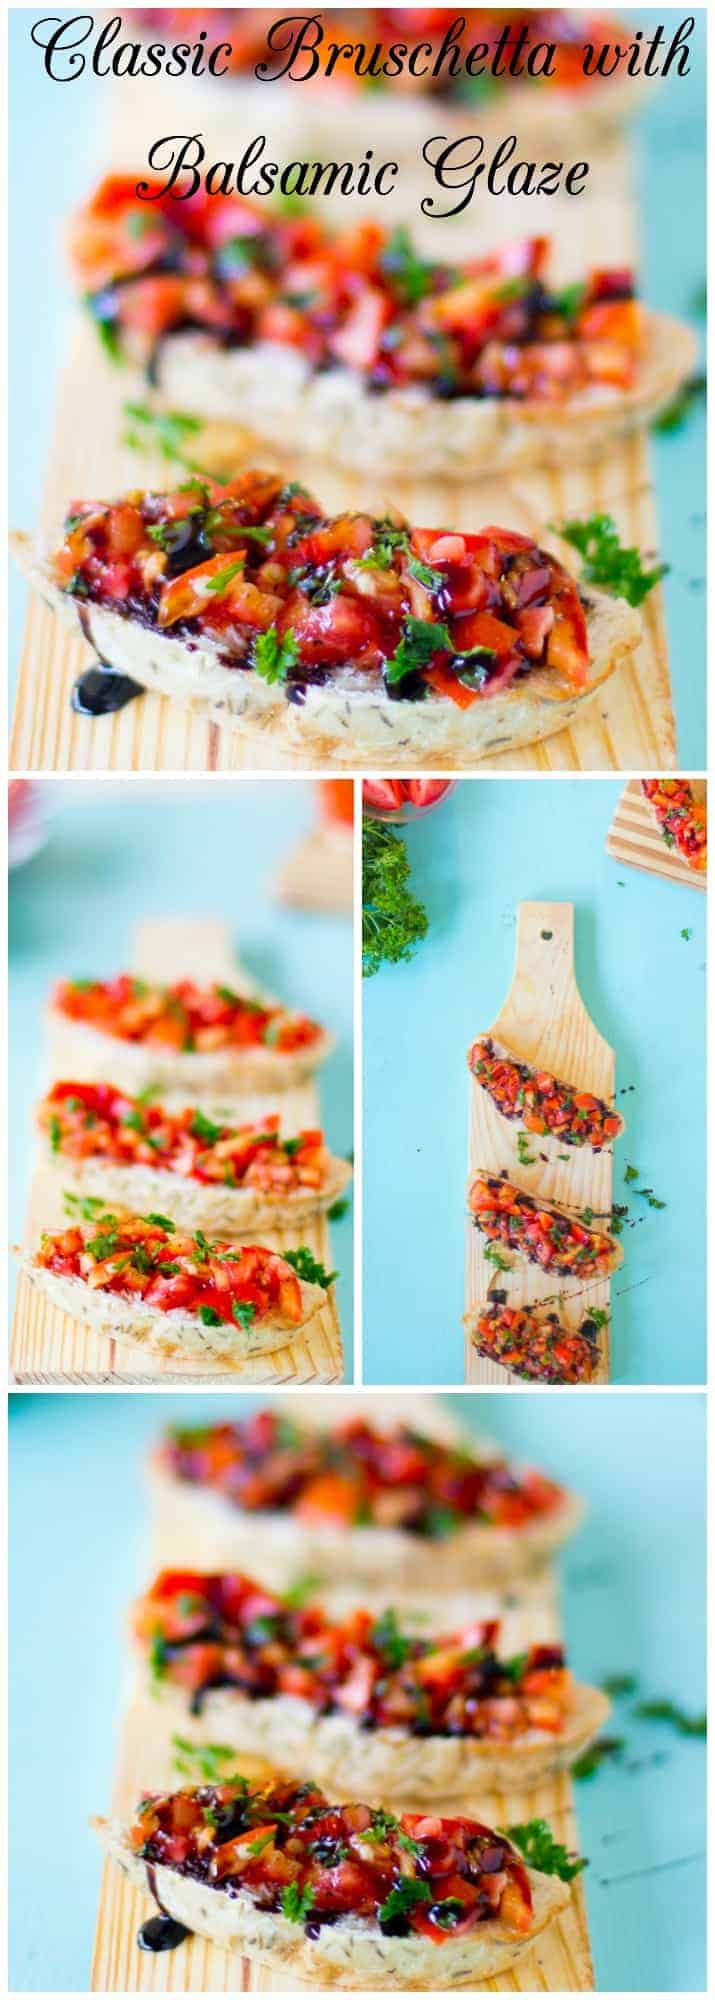 Montage of bruschetta with Balsamic Glaze on wooden boards.